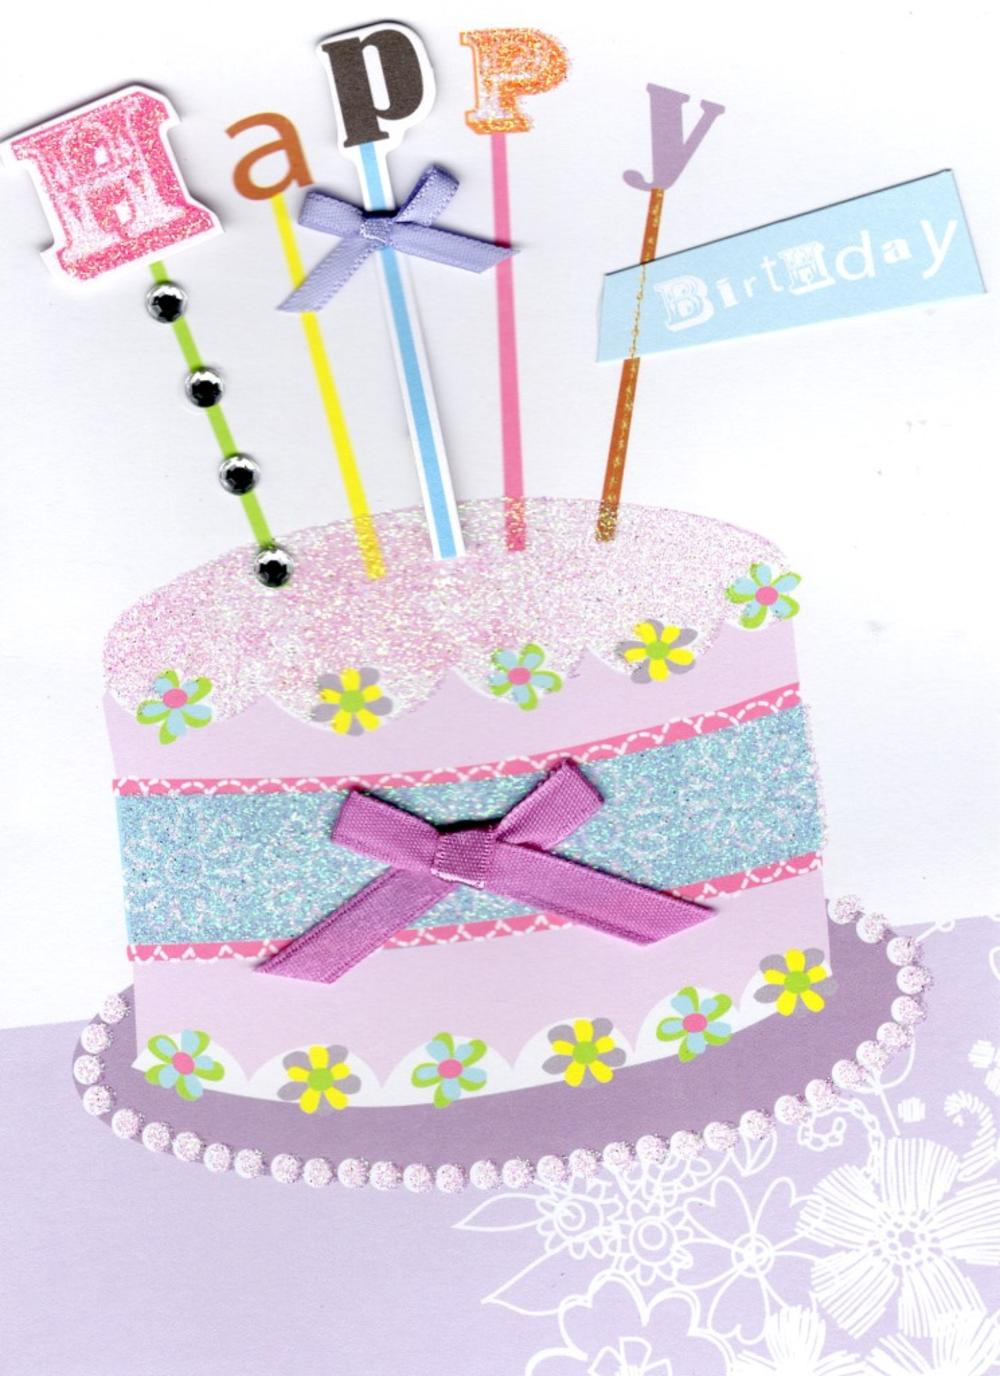 Hat Cake Handmade Happy Birthday Card